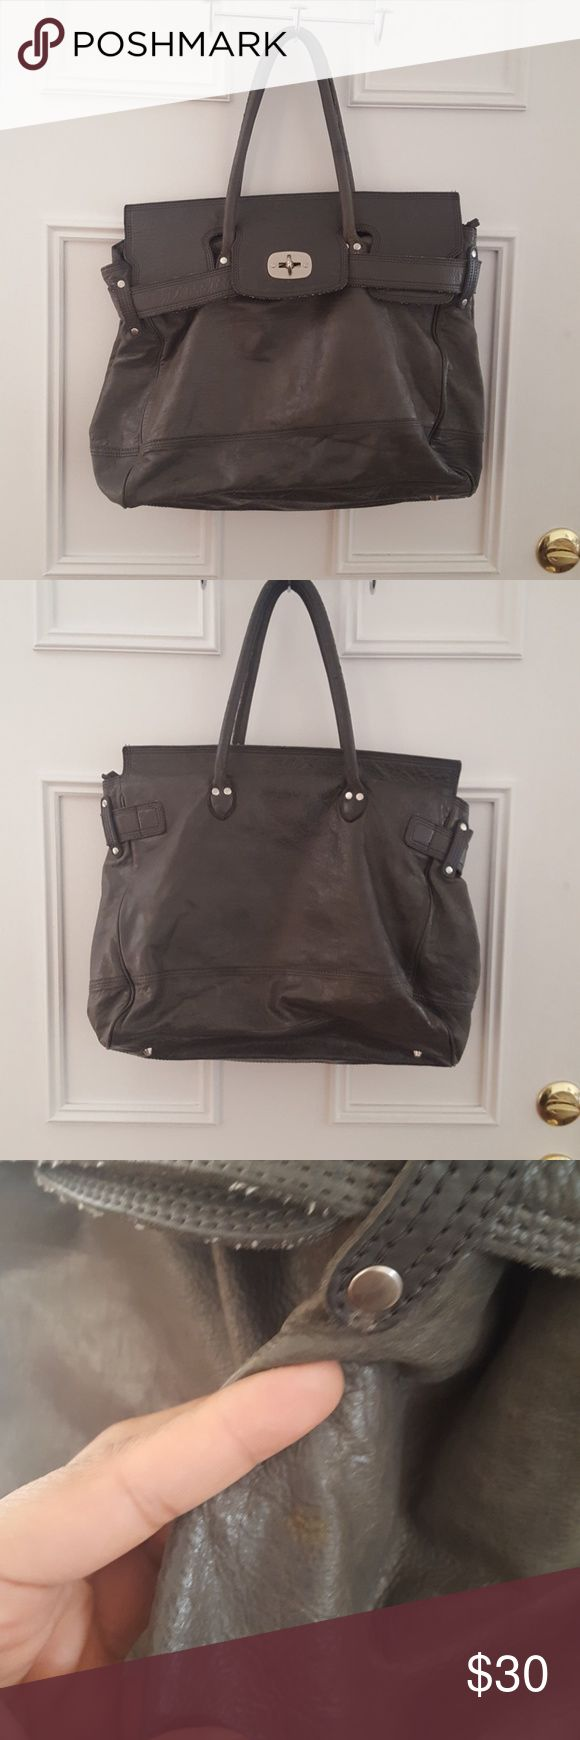 Liebeskind Oversize Gray Leather Handbag Oversize bag up for sale! This bag has so much character. I got many compliments on it. Signs of wear  (pictured) but overall still a beautiful piece. Also it can fit laptops and textbooks or can be a great weekender cause of its size. Liebeskind Bags Shoulder Bags